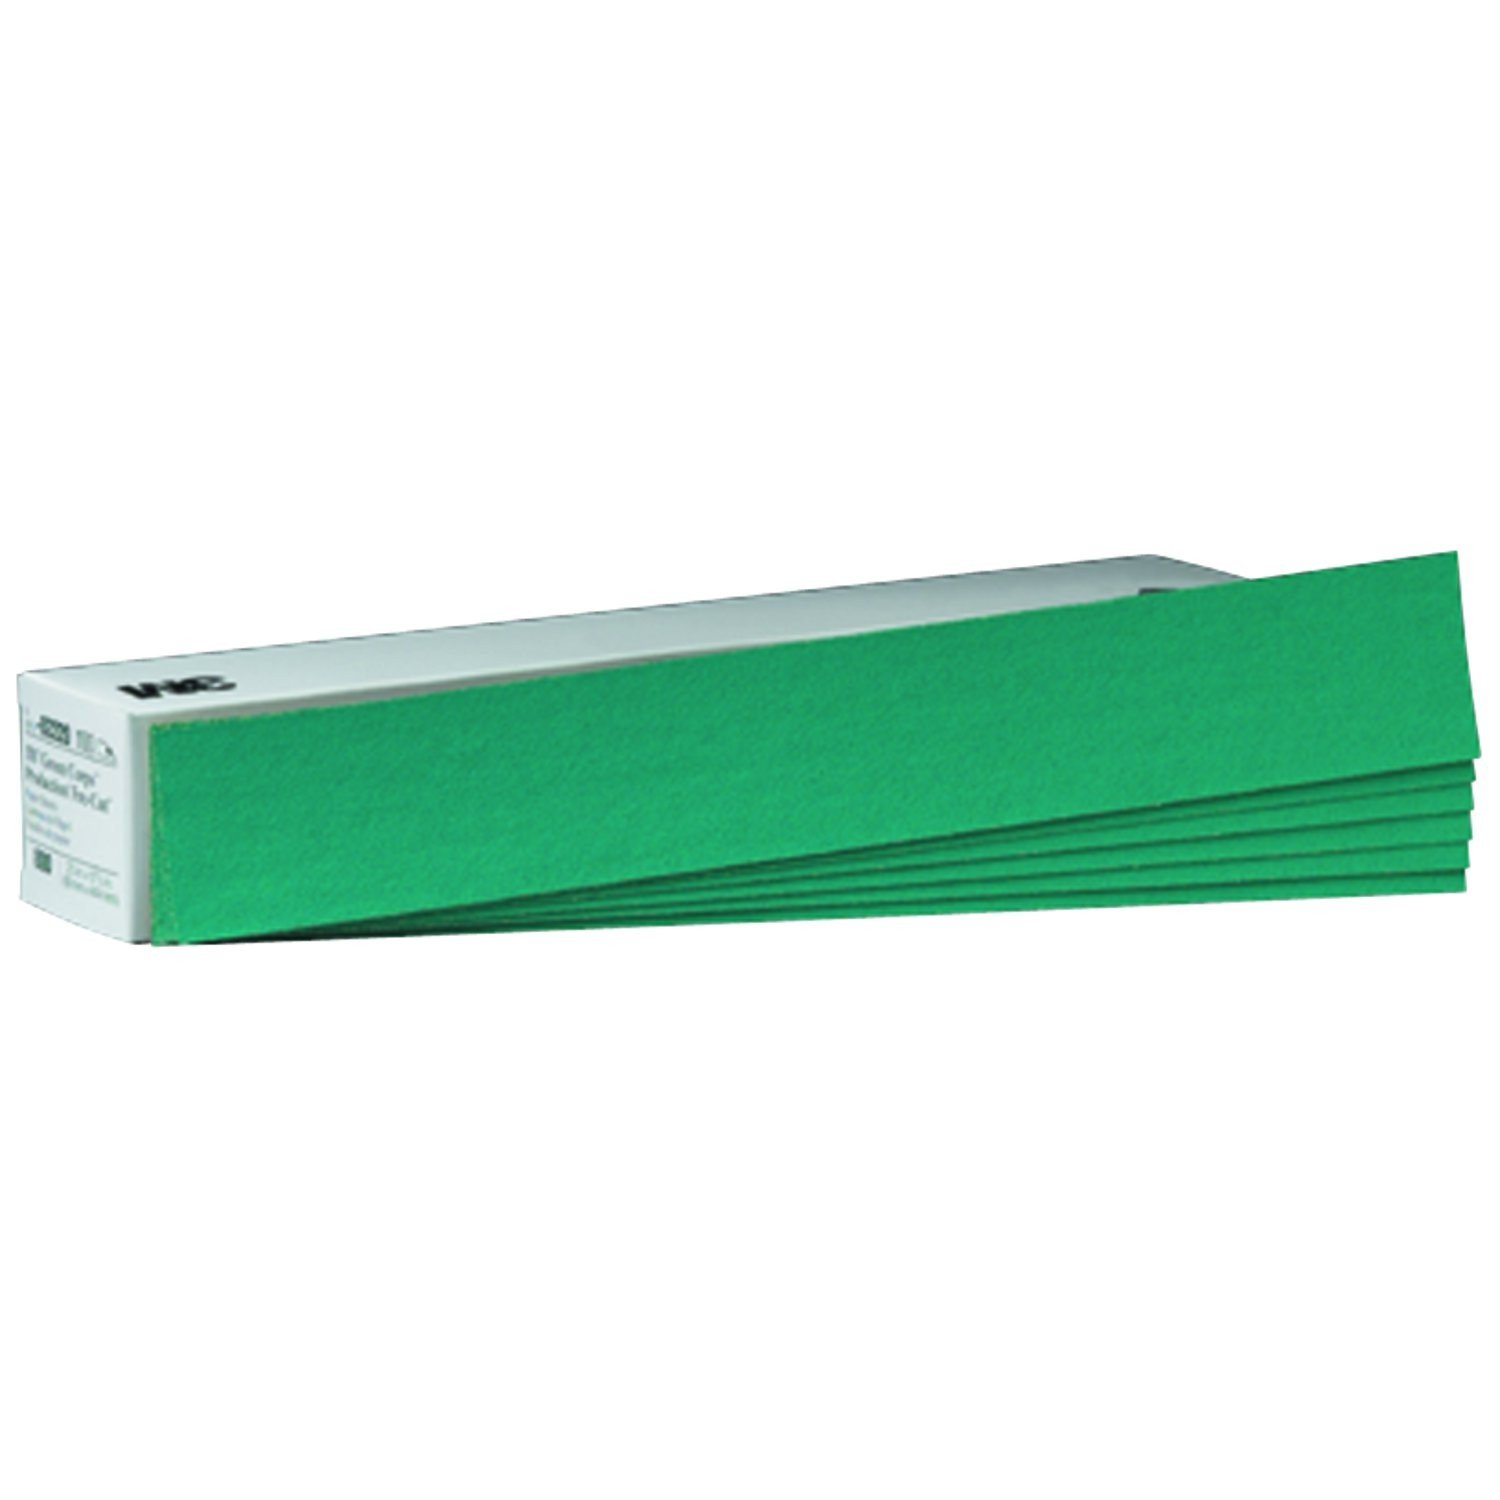 3M 02225 Green Corps 3-2/3' x 9' 80D Grit Production Resin Sheet